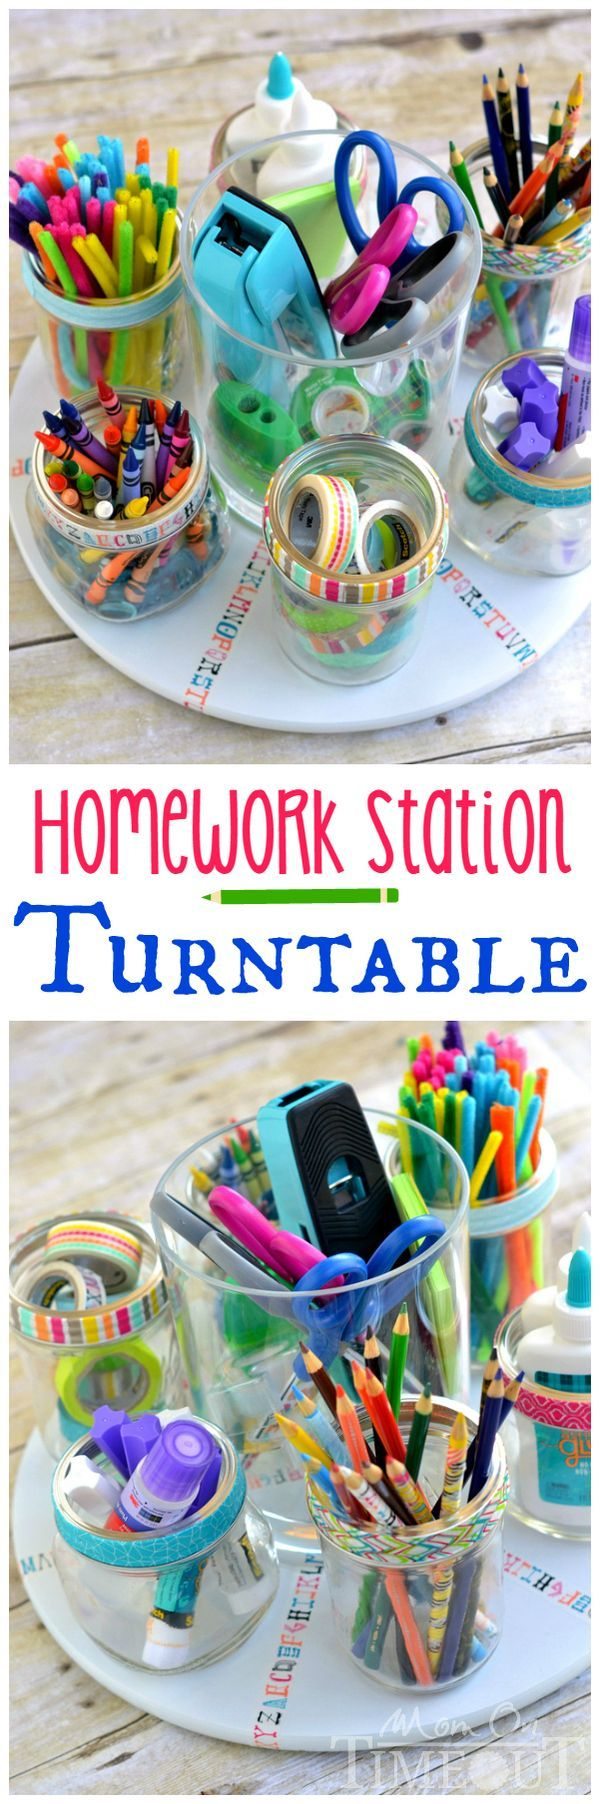 Homework time doesn't have to be a pain! This Homework Station Turntable keeps all homework supplies at your fingertips!   MomOnTimeout.com   #craft #school #MakeAmazing #ad